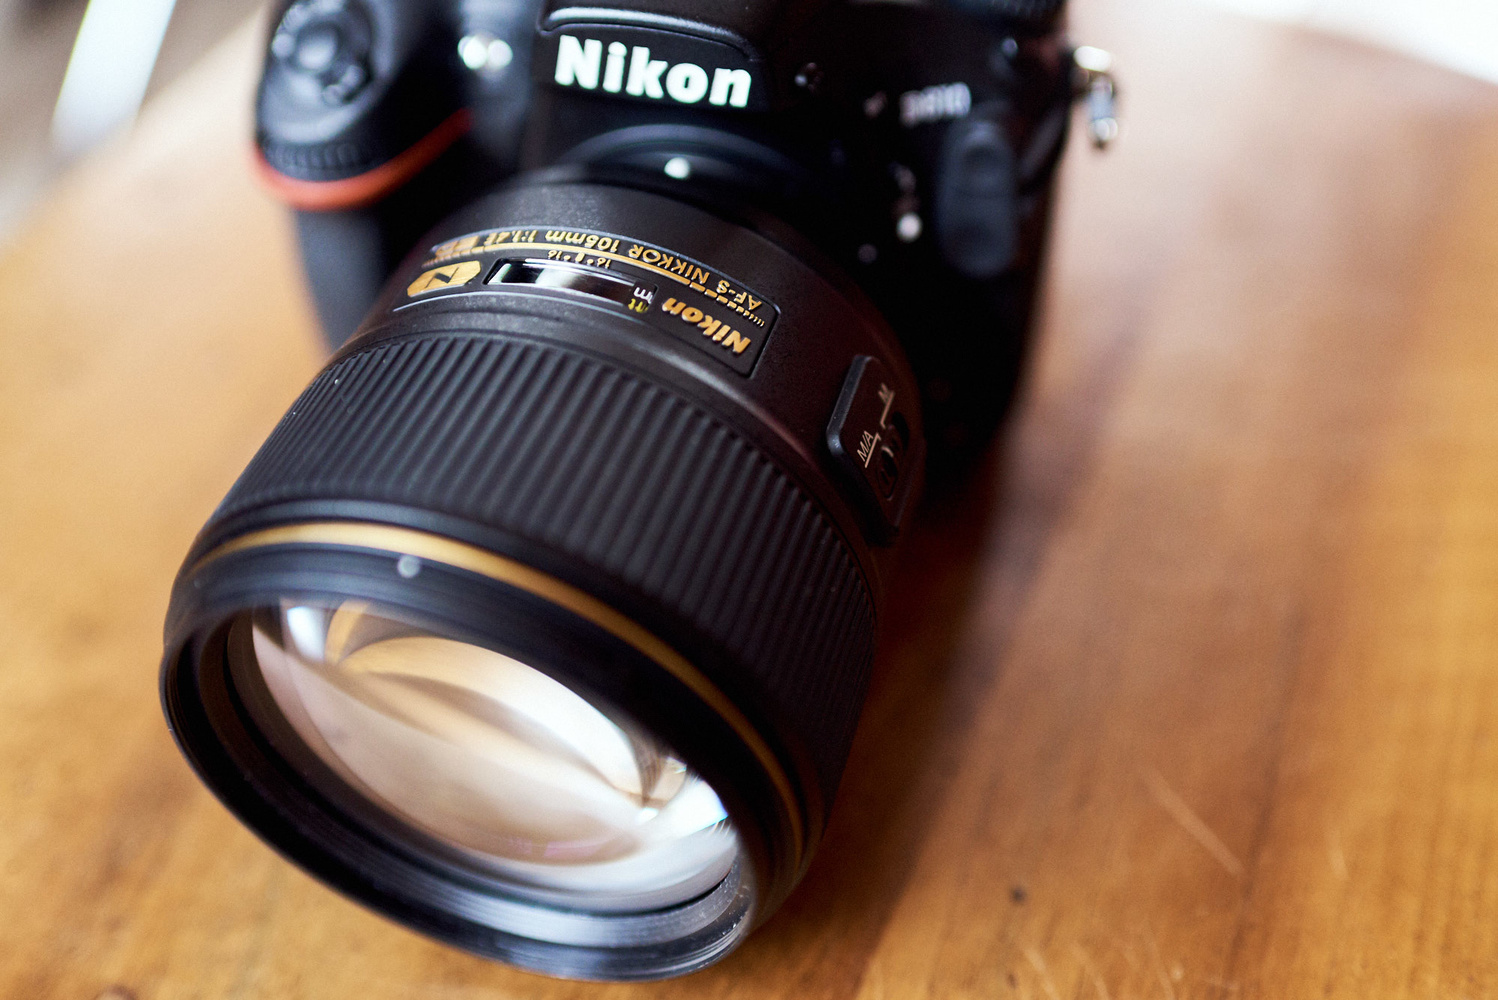 Fstoppers Reviews the New Best Portrait Lens, the Nikon